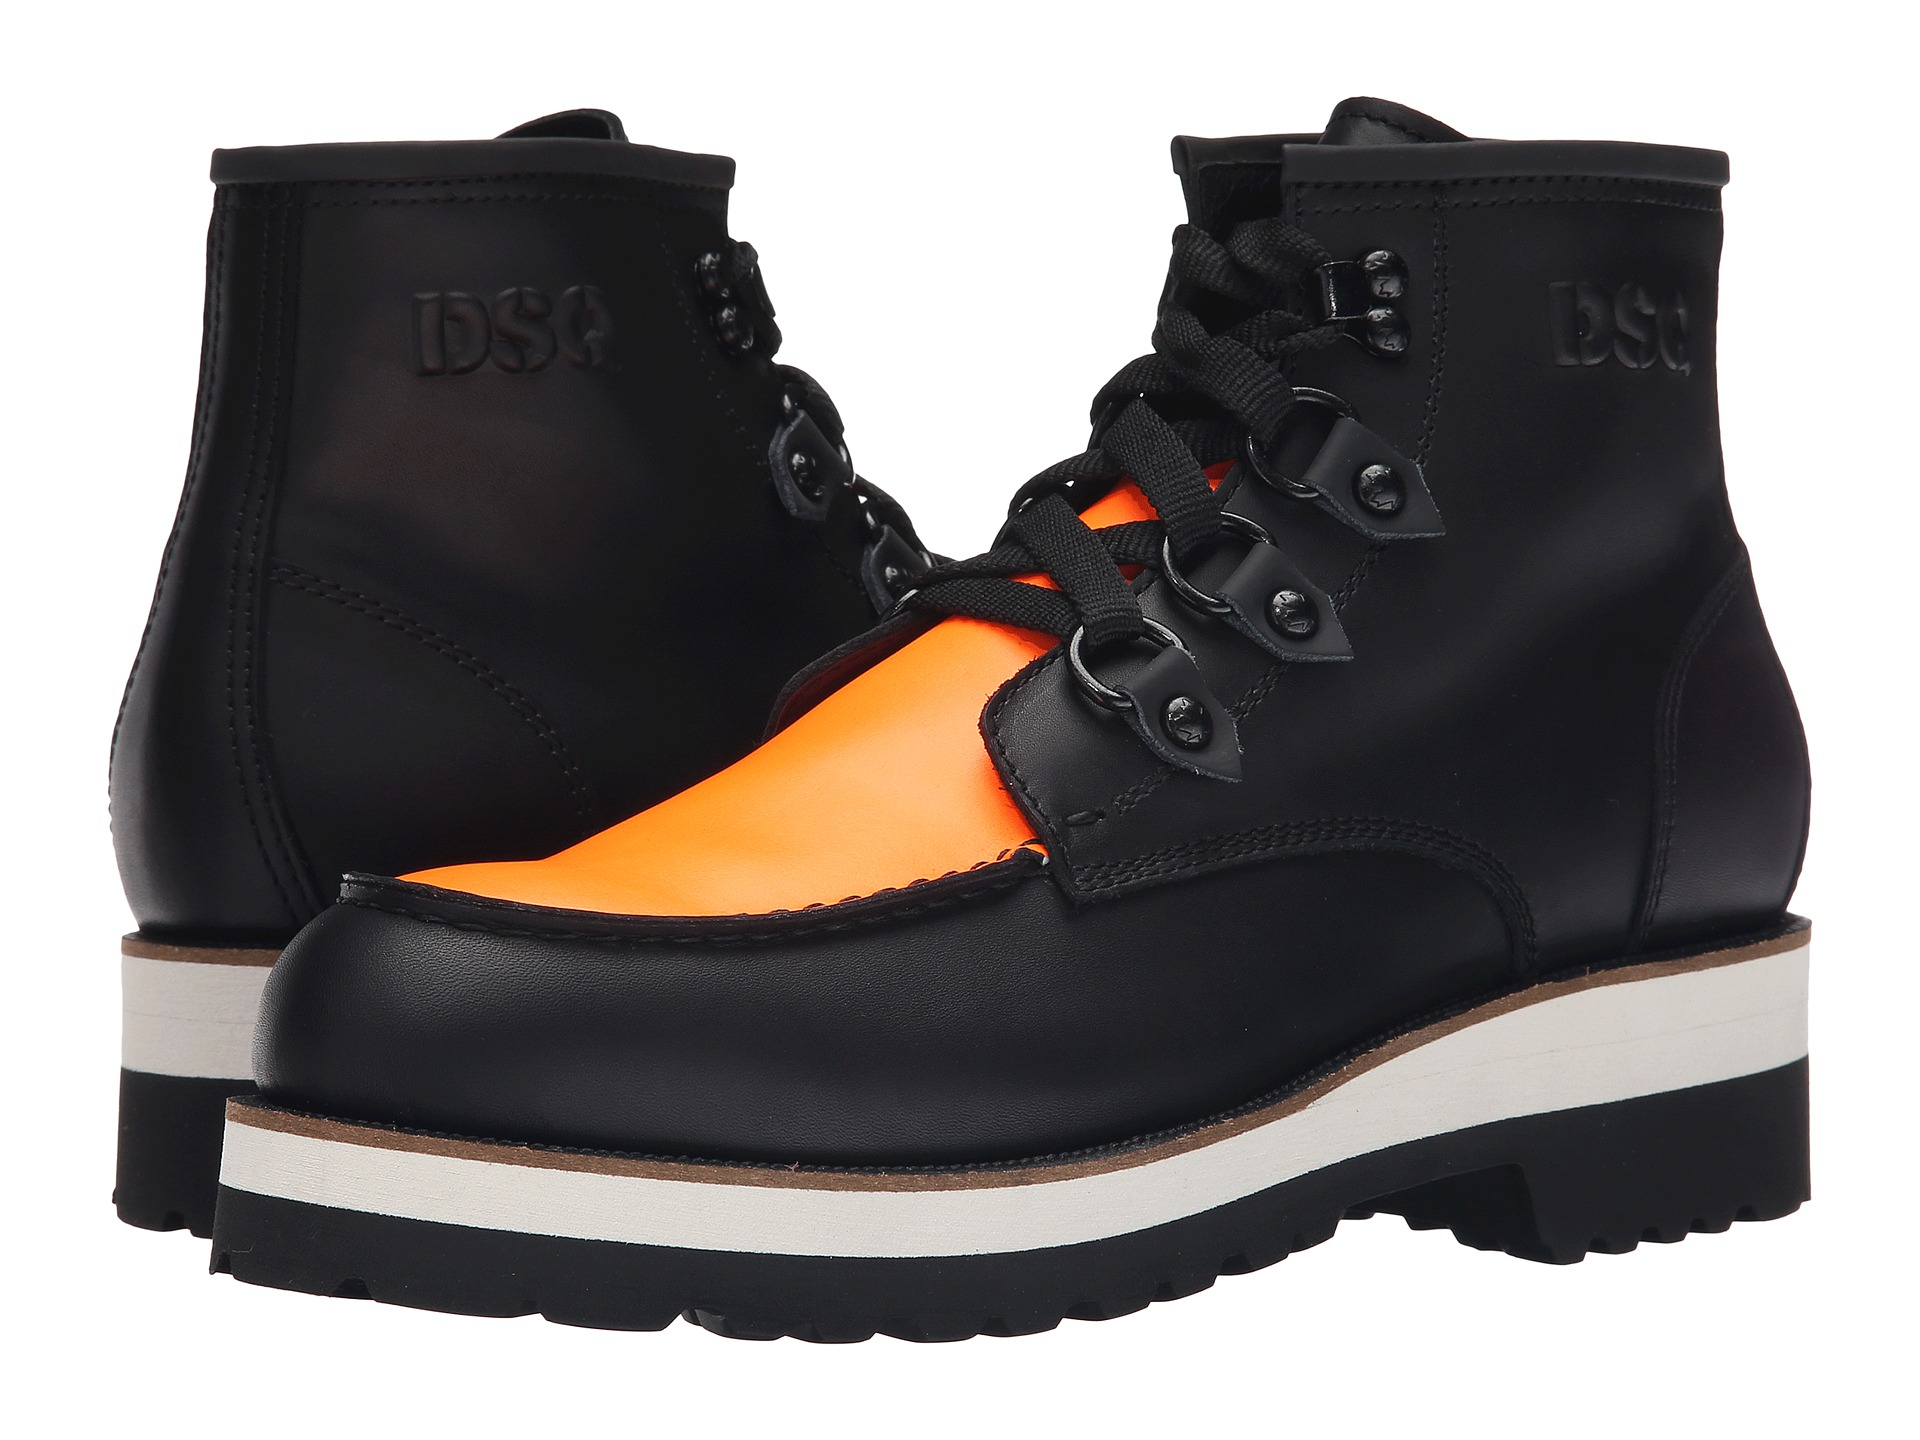 dsquared 178 construction calf leather ankle boot in black lyst